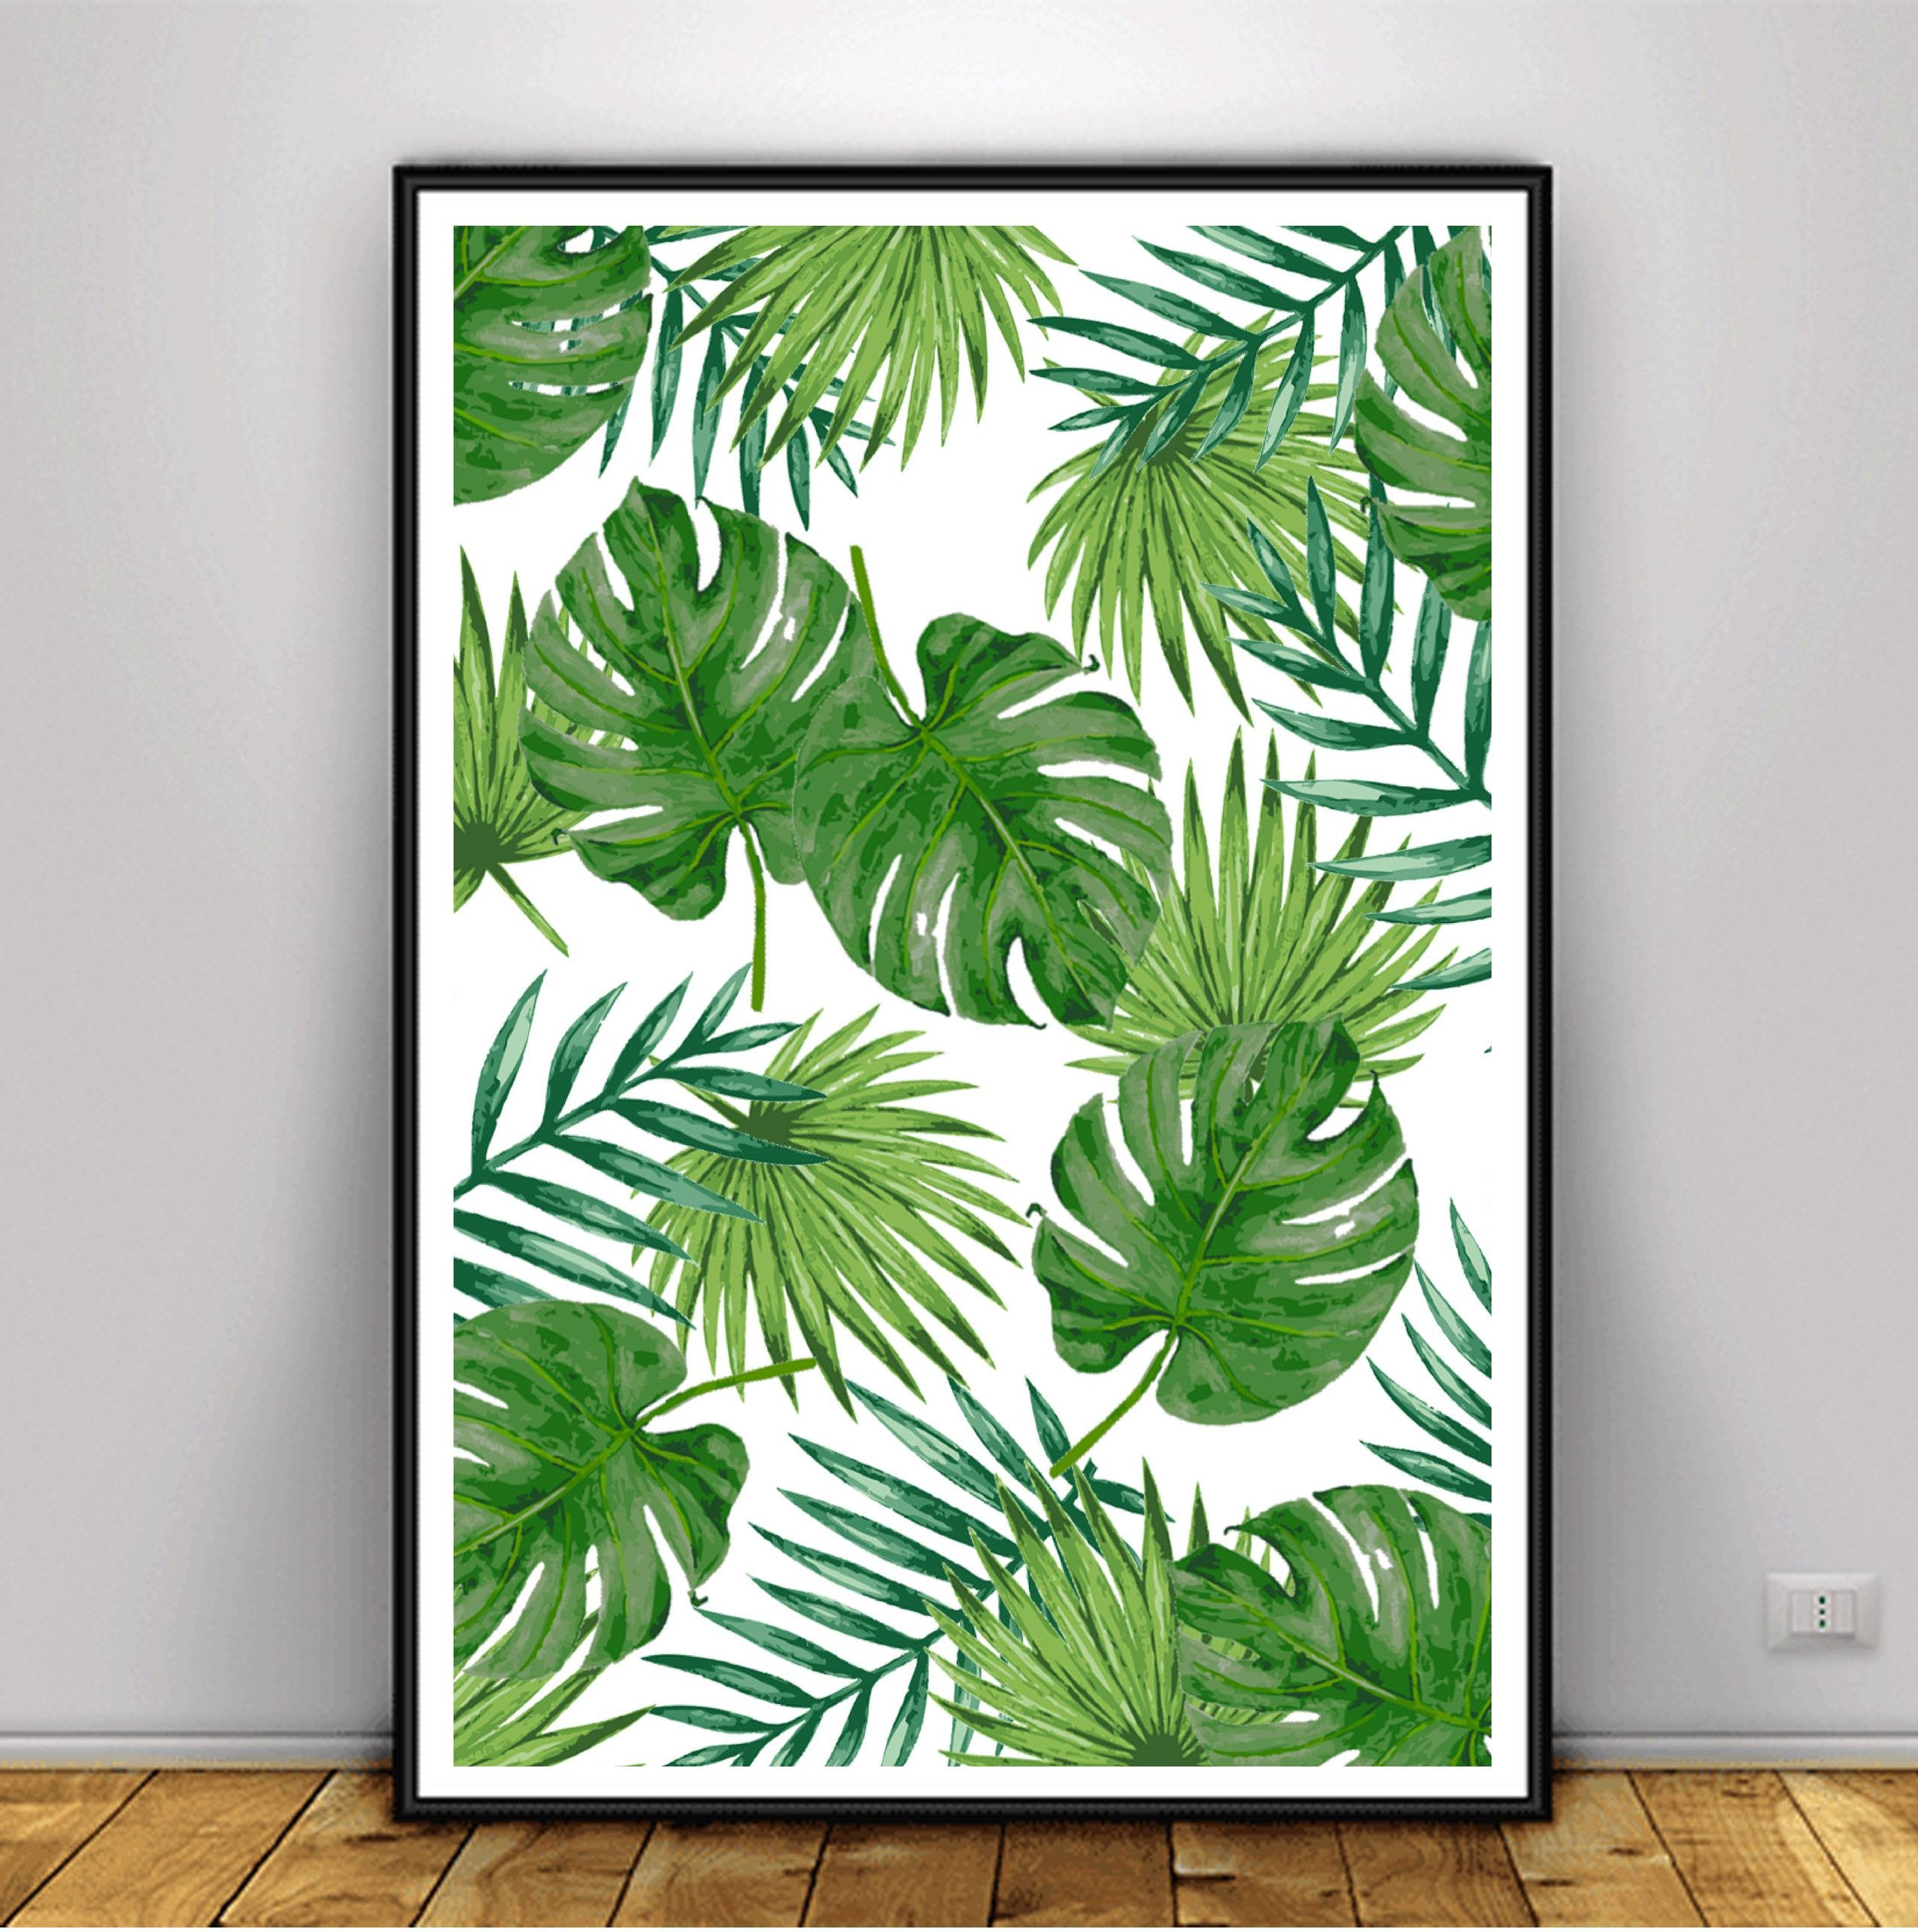 Tropical Leaf Print Banana Leaf Print Palm Leaf Poster Intended For Most Up To Date Palm Leaf Wall Art (View 18 of 20)